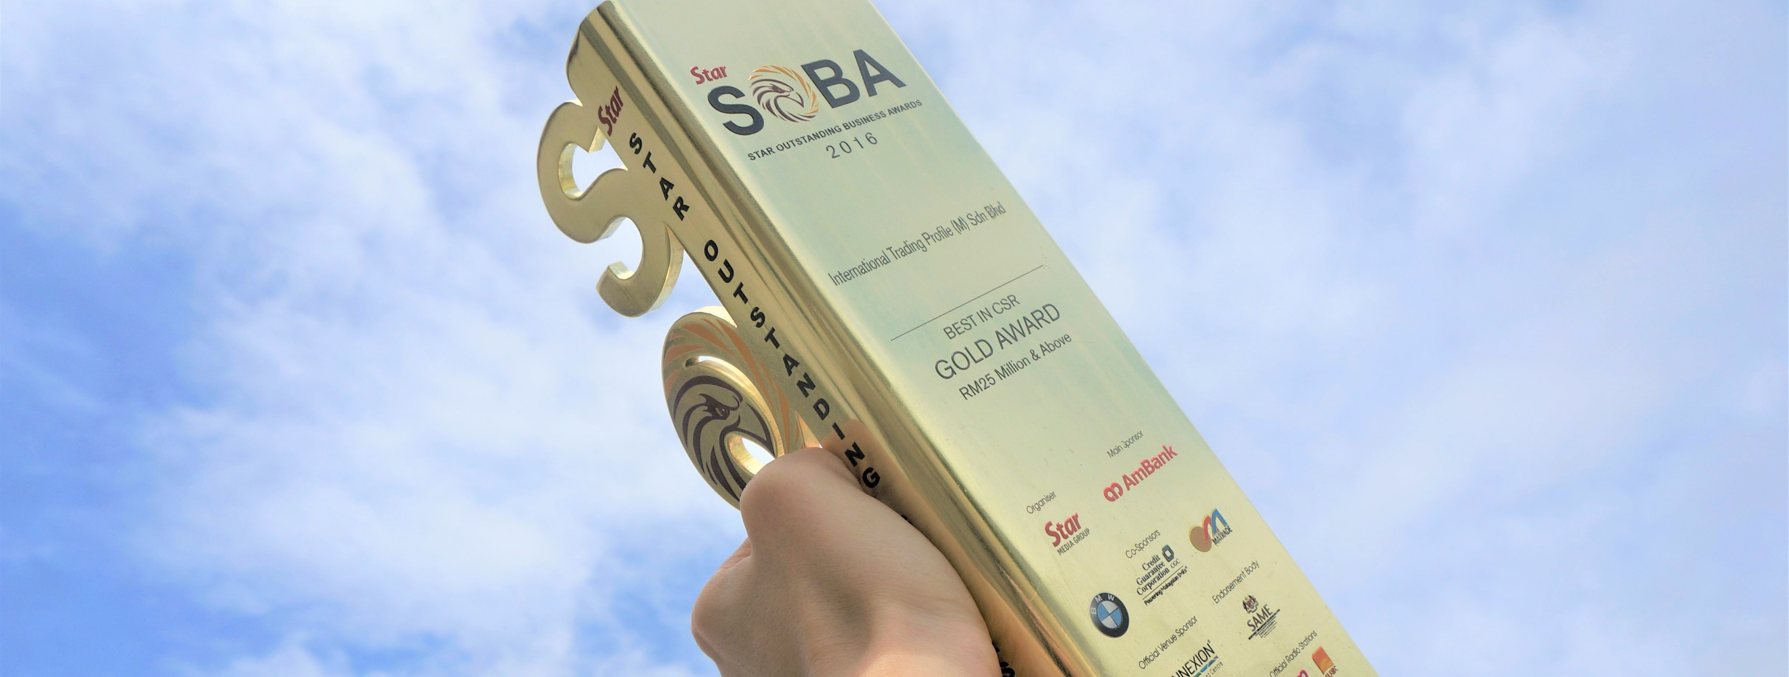 ITP is rewarded with Gold Award in Best CSR by SOBA Awards (17 Jan 2017)